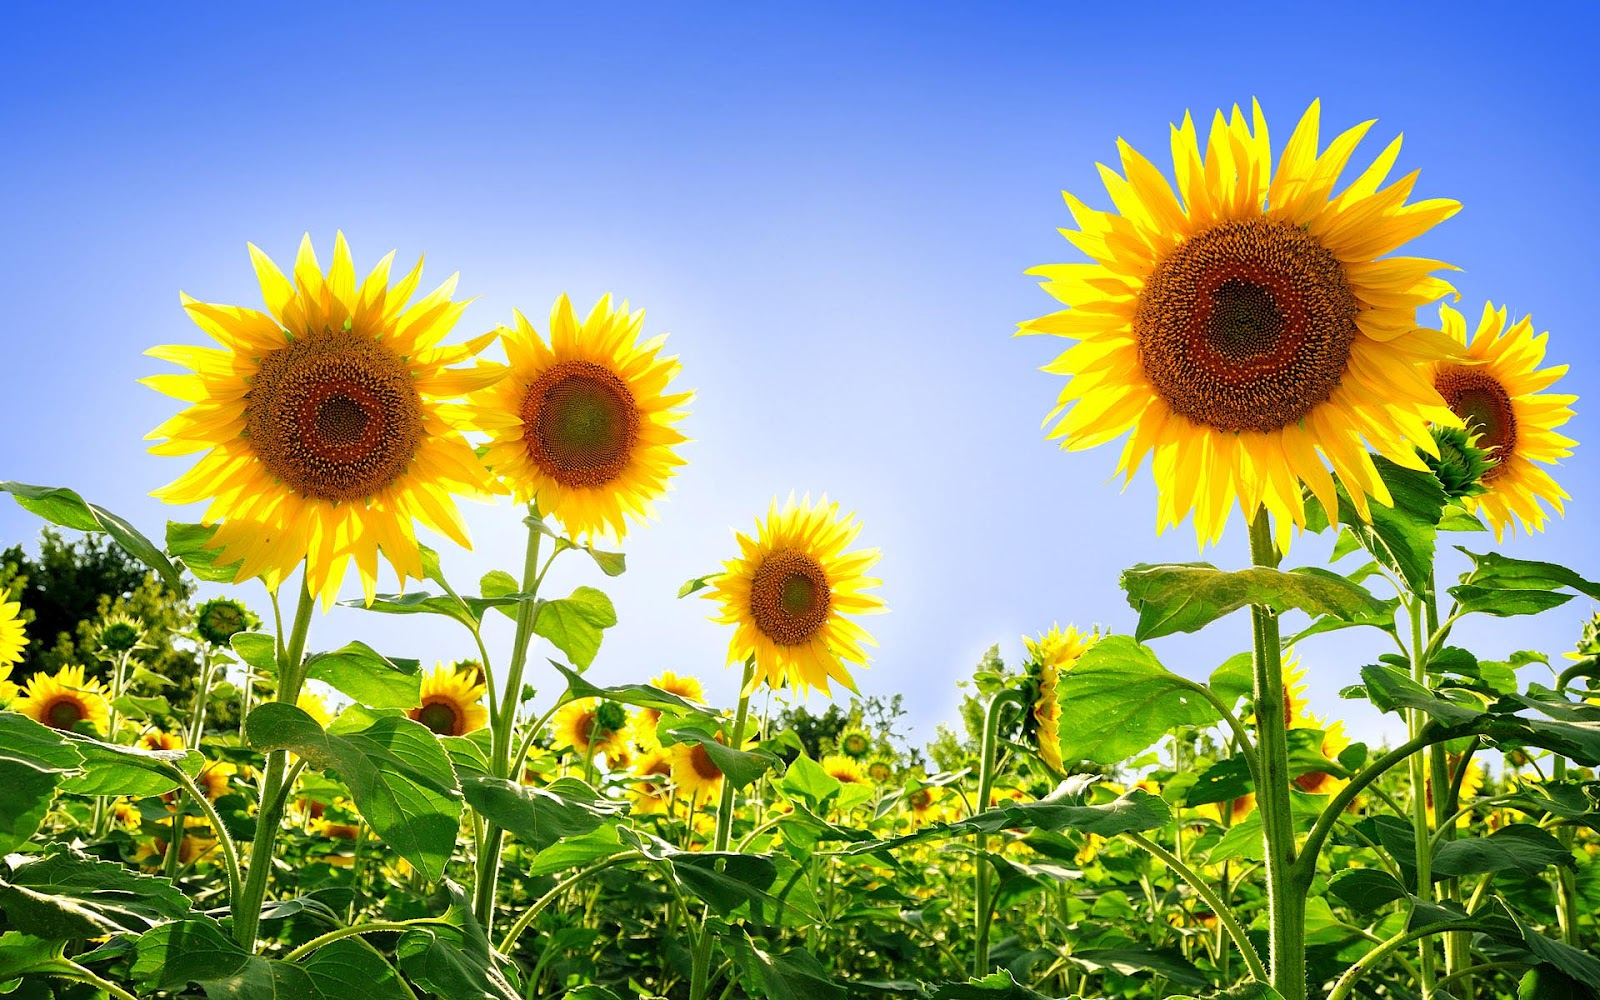 HD Sunflowers Wallpapers Top Best HD Wallpapers for Desktop